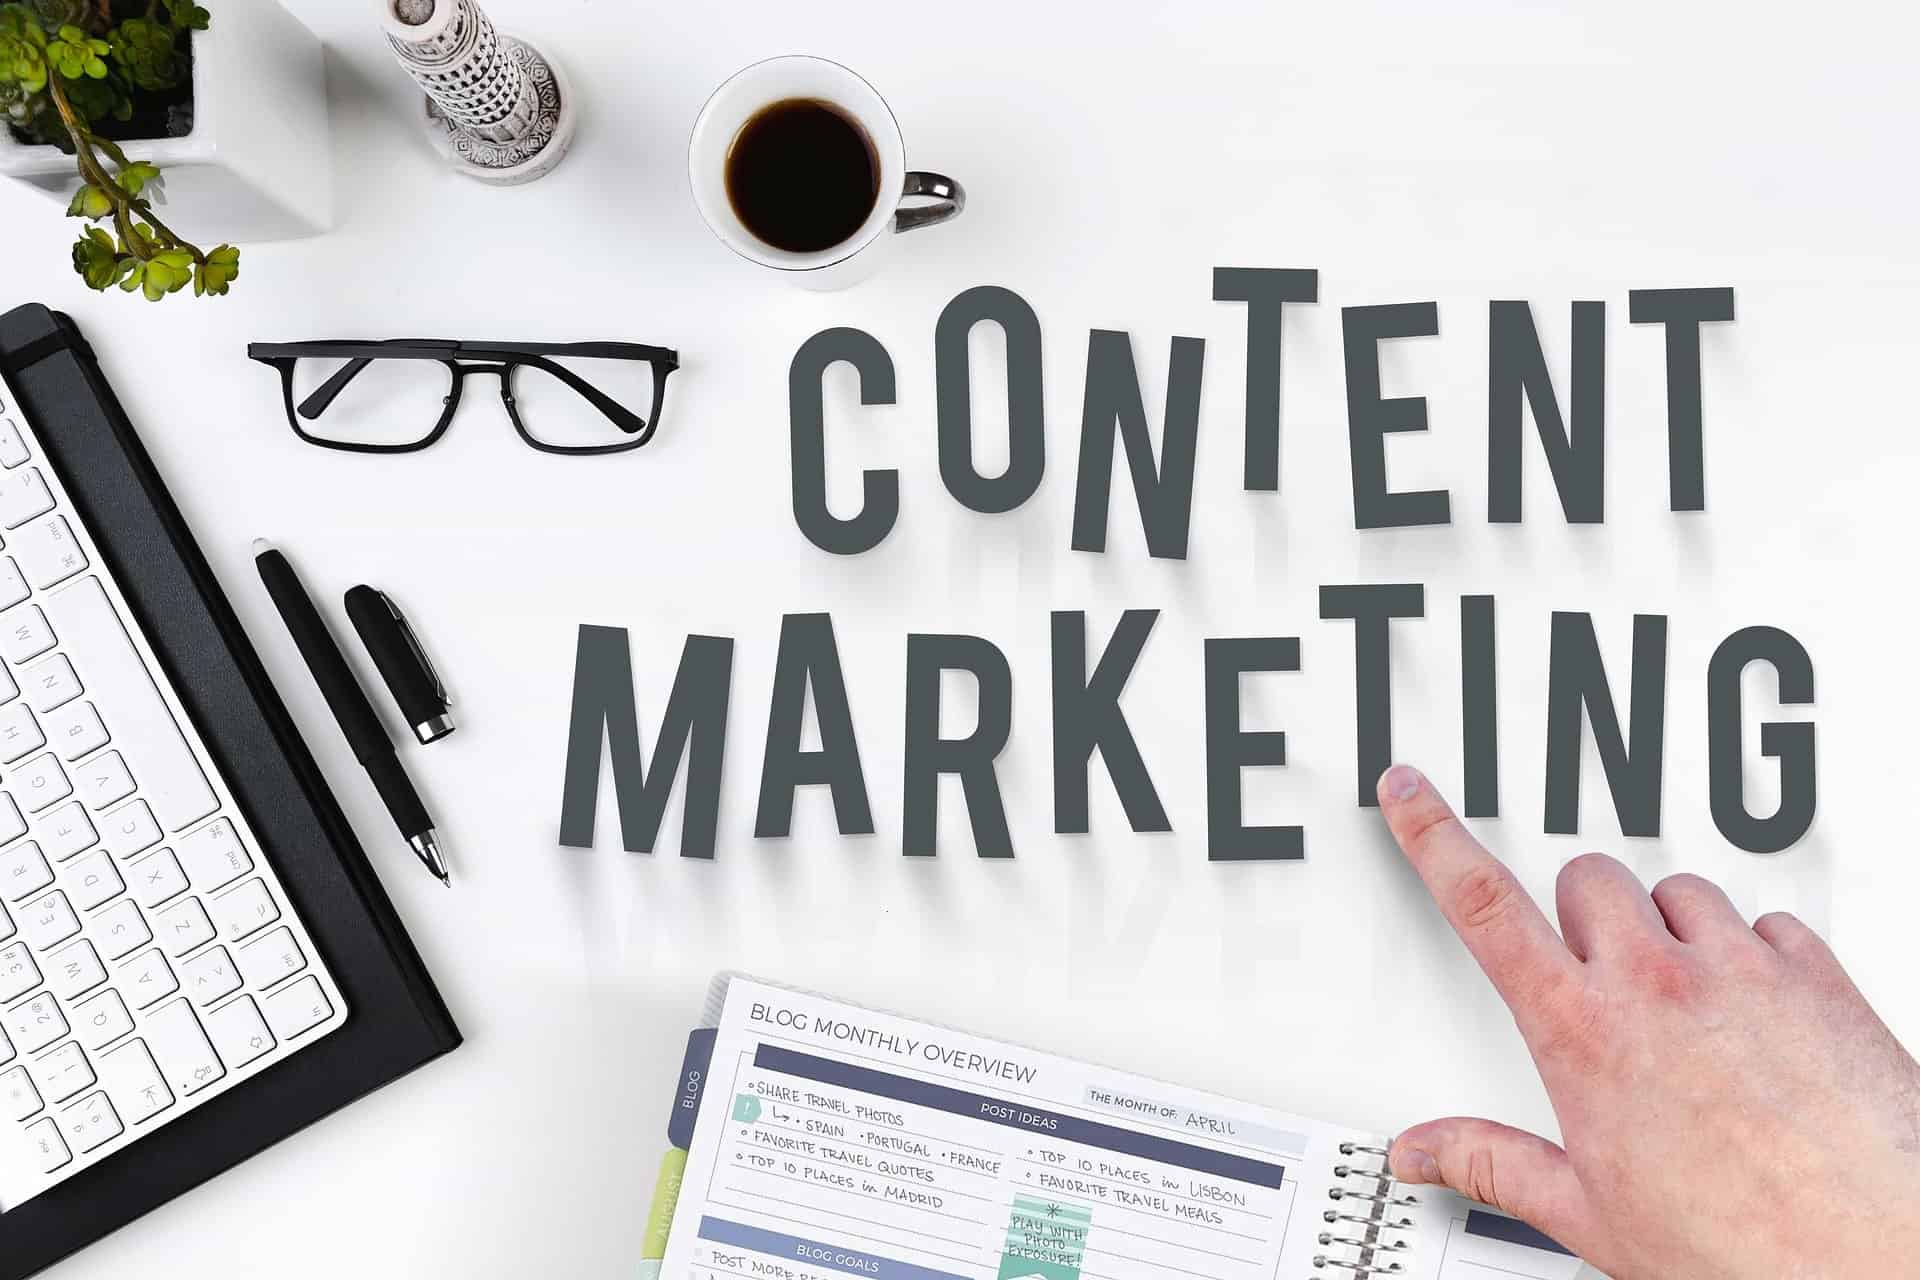 6 Content Marketing Strategy Tips to Boost Your Business